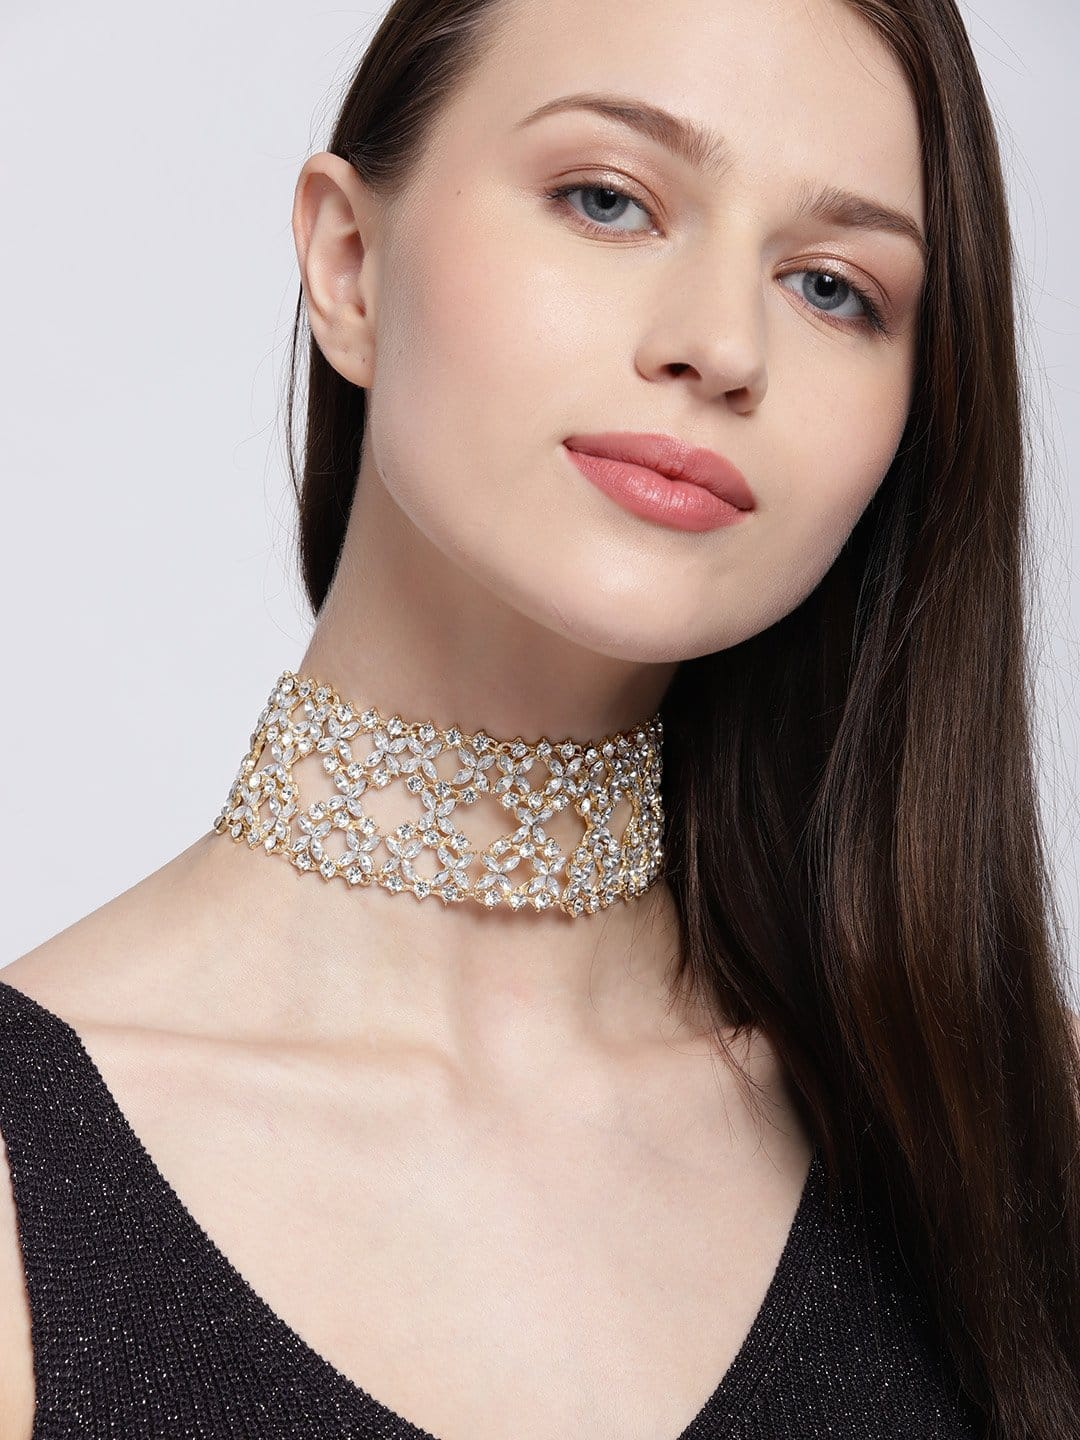 Bellofox Abida Choker Necklaces